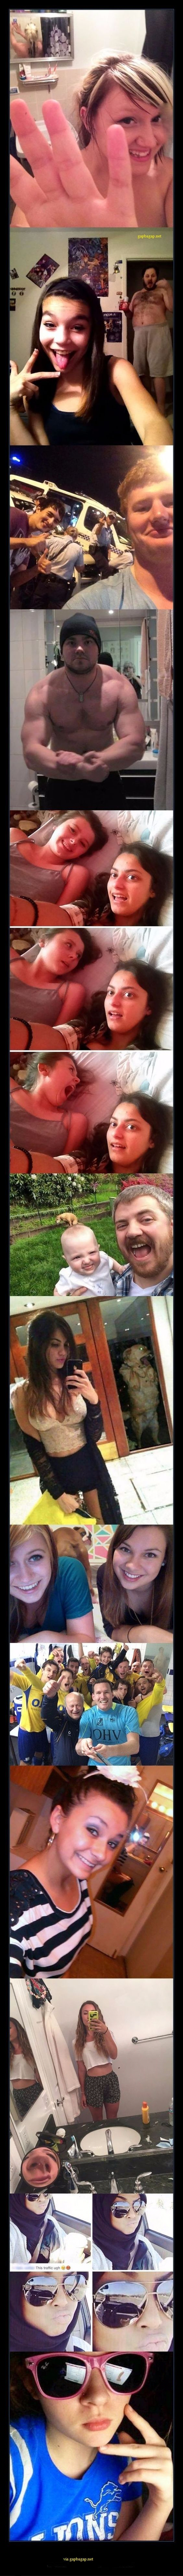 Funny Selfies Of The Day